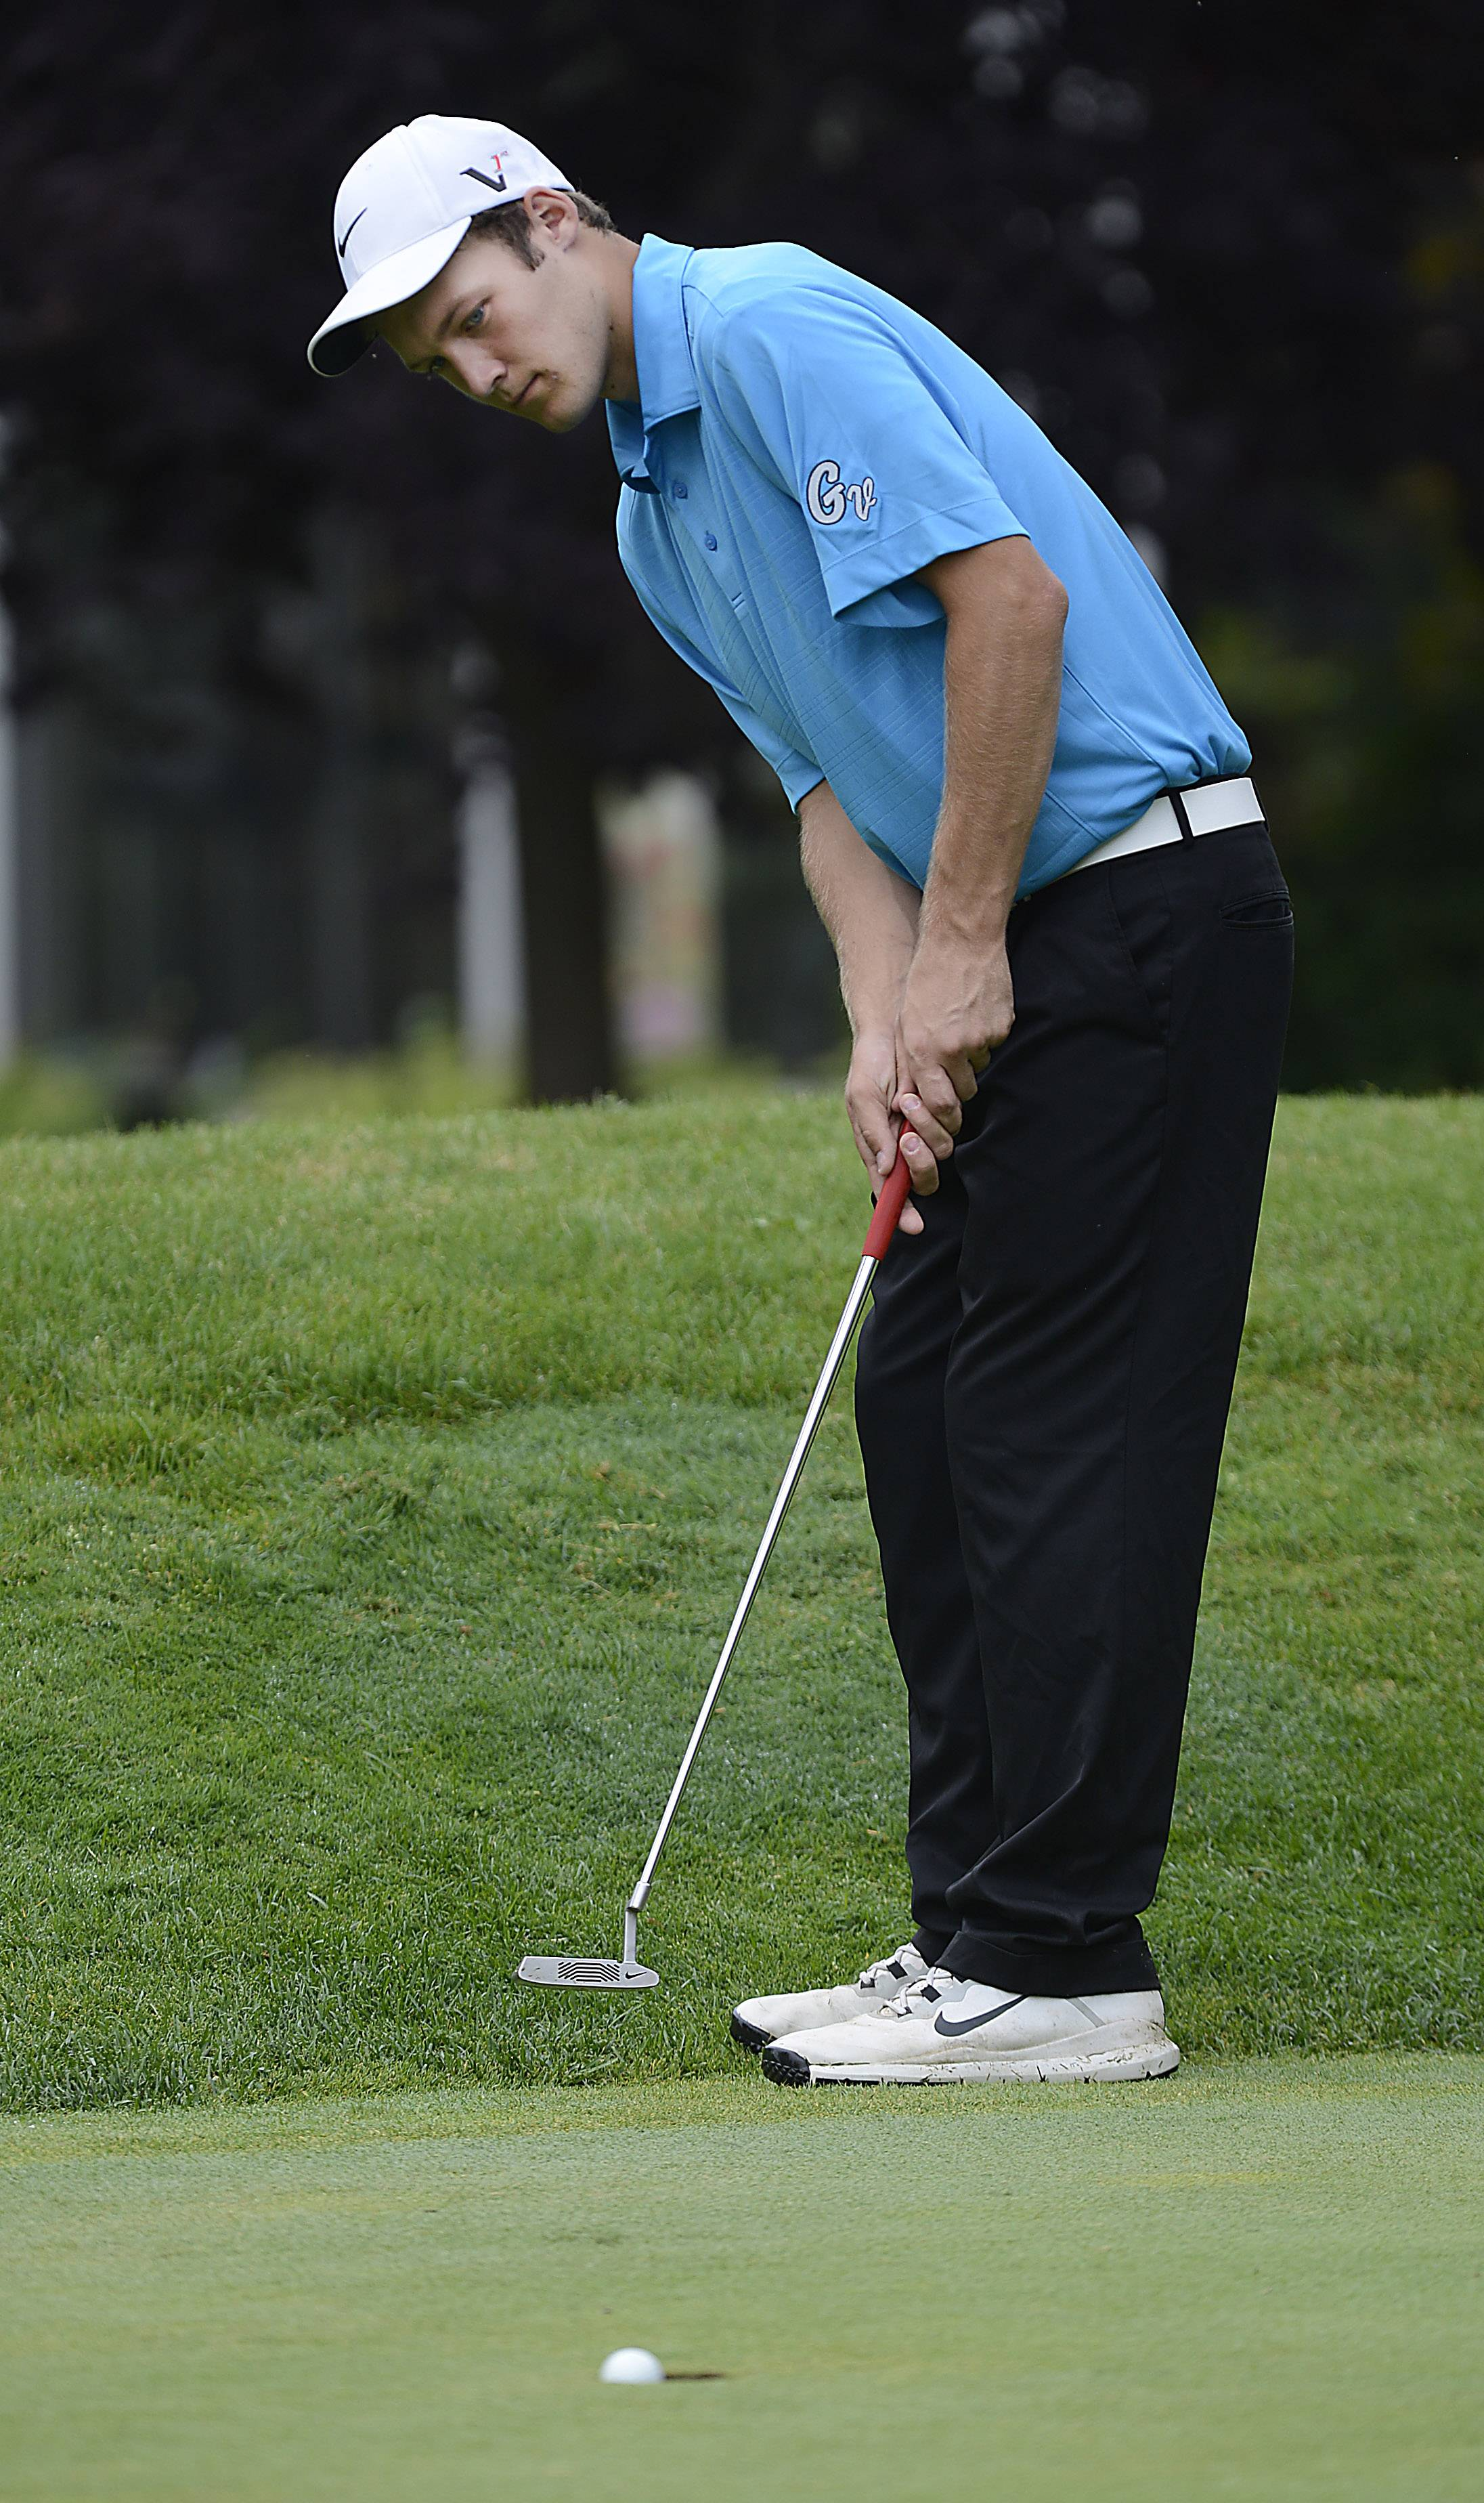 Geneva's Spencer Sharp sees his putt drop Monday during the McChesney Cup at the Geneva Golf Club in Geneva.